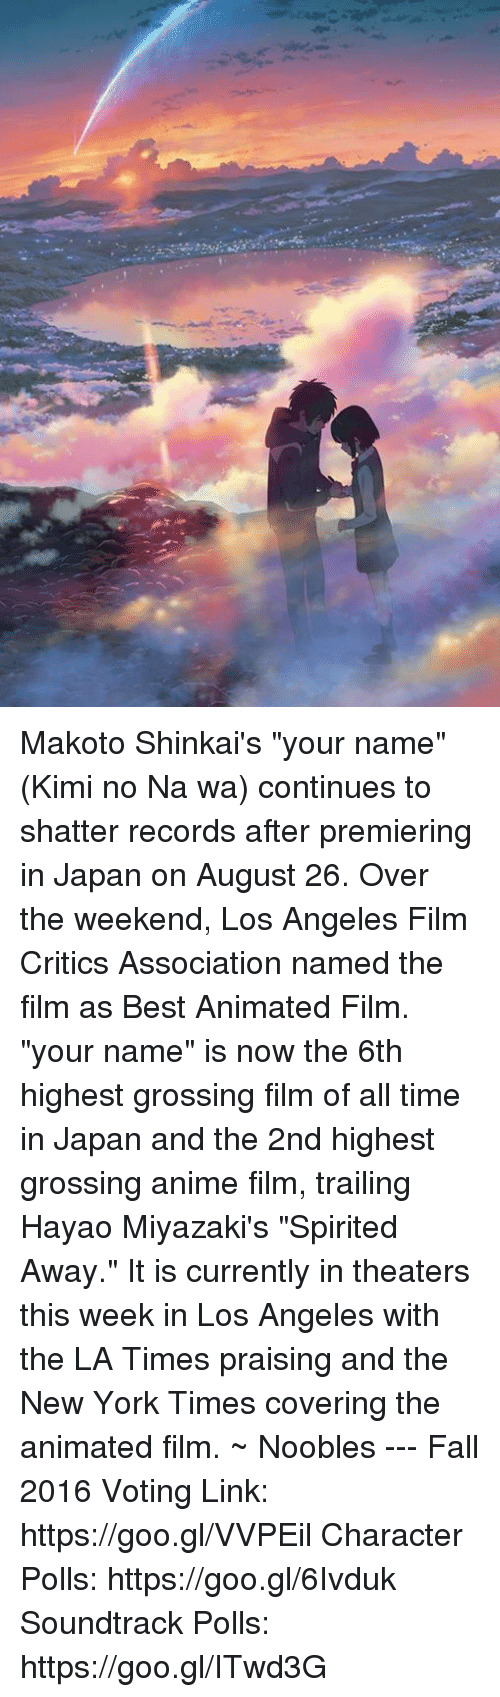 """best animes: Makoto Shinkai's """"your name"""" (Kimi no Na wa) continues to shatter records after premiering in Japan on August 26.   Over the weekend, Los Angeles Film Critics Association named the film as Best Animated Film.   """"your name"""" is now the 6th highest grossing film of all time in Japan and the 2nd highest grossing anime film, trailing Hayao Miyazaki's """"Spirited Away.""""   It is currently in theaters this week in Los Angeles with the LA Times praising and the New York Times covering the animated film.  ~ Noobles --- Fall 2016 Voting Link: https://goo.gl/VVPEil Character Polls: https://goo.gl/6Ivduk Soundtrack Polls: https://goo.gl/ITwd3G"""